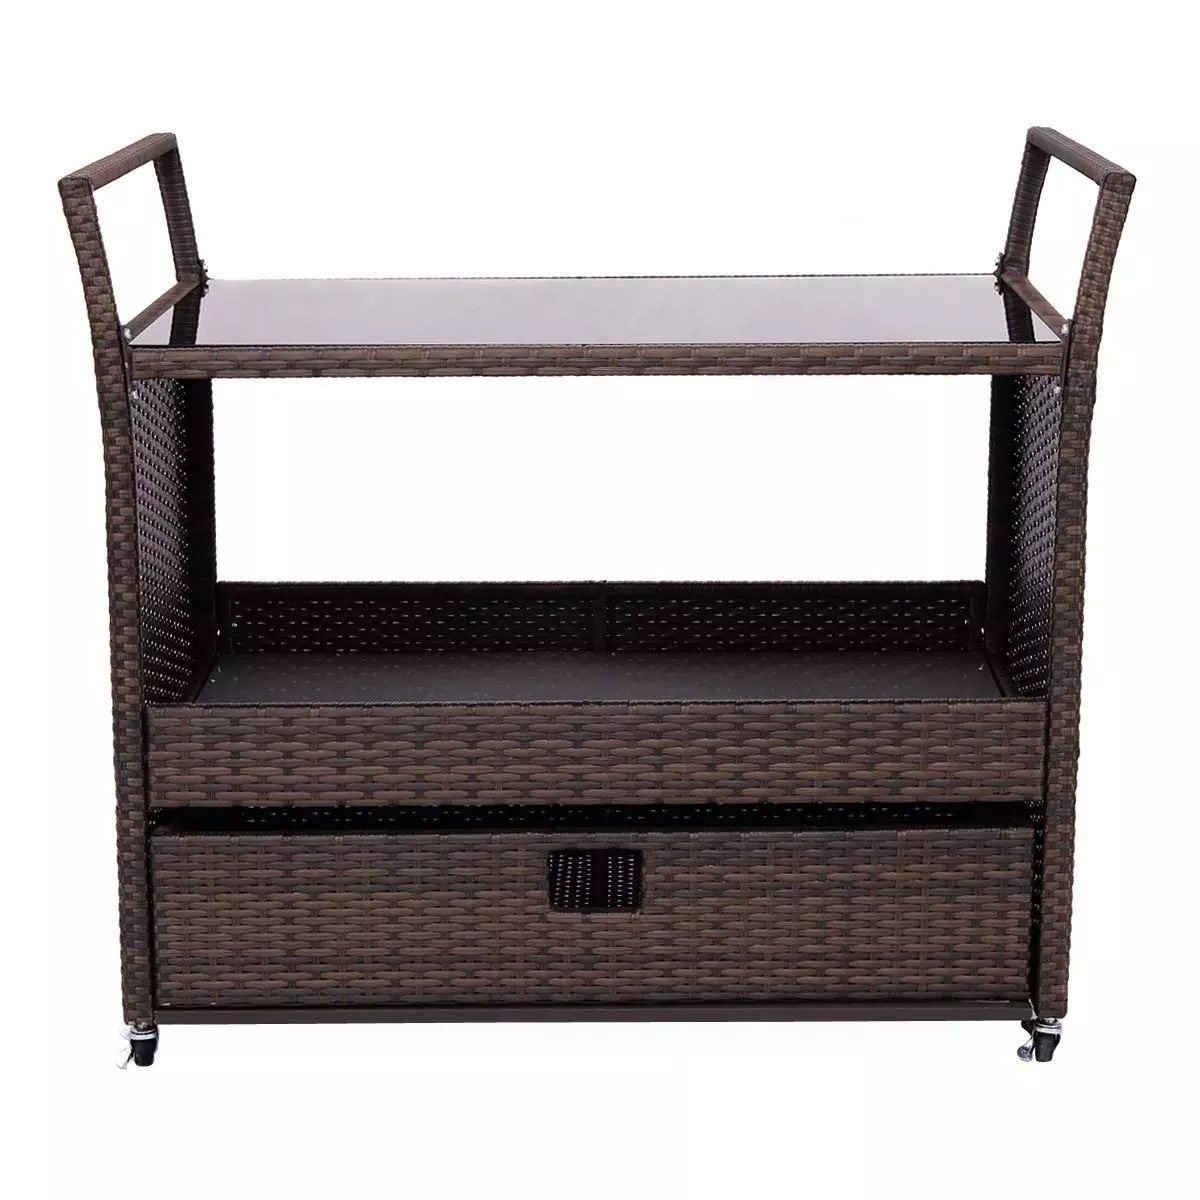 outdoor wicker portable party bar drink entertaining patio rolling serving cart with shelf buy kitchen serving trolley cart hotel service cart hotel